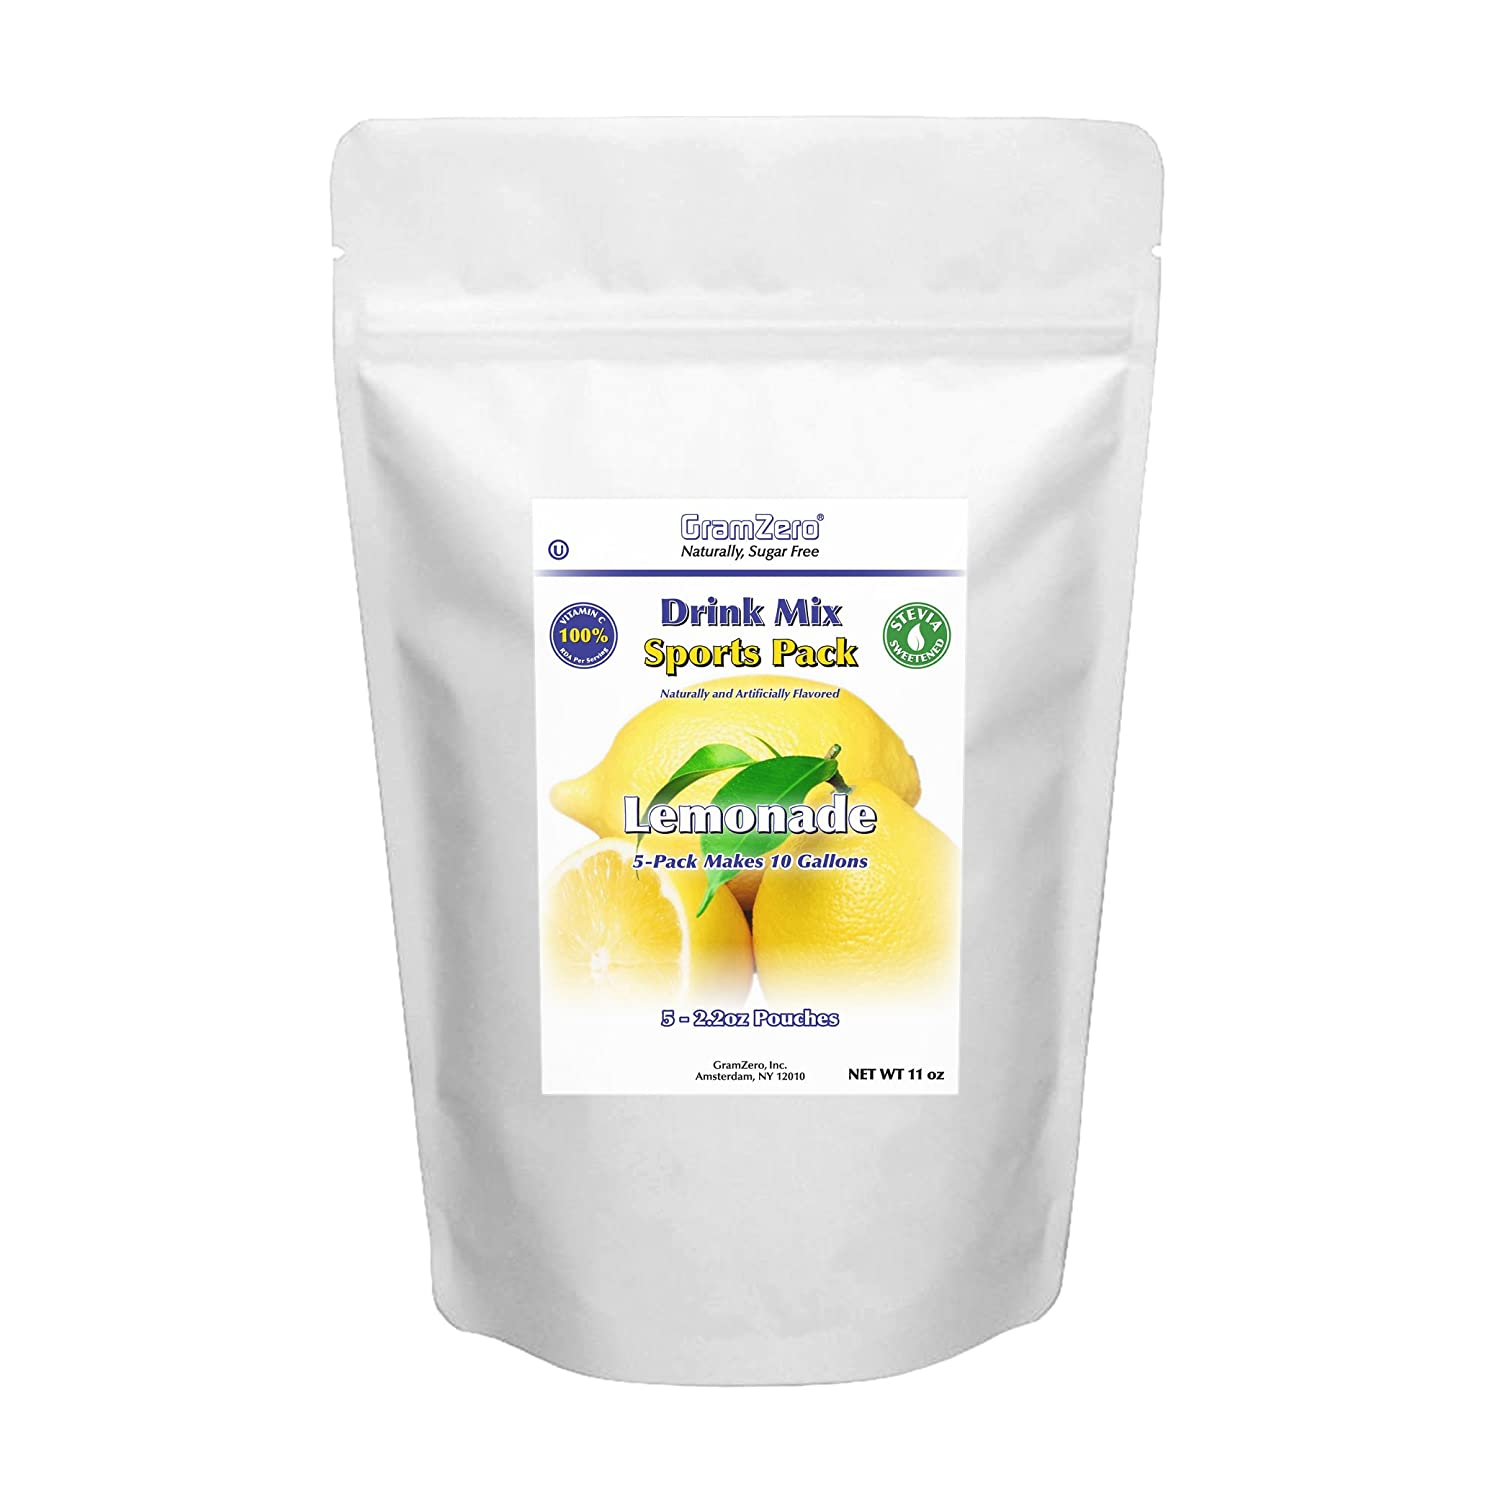 GramZero Lemonade Sugar Free Drink Mix Sports Pack, Great For Nutrition Club Loaded Teas, Low Calorie, Stevia Sweetened